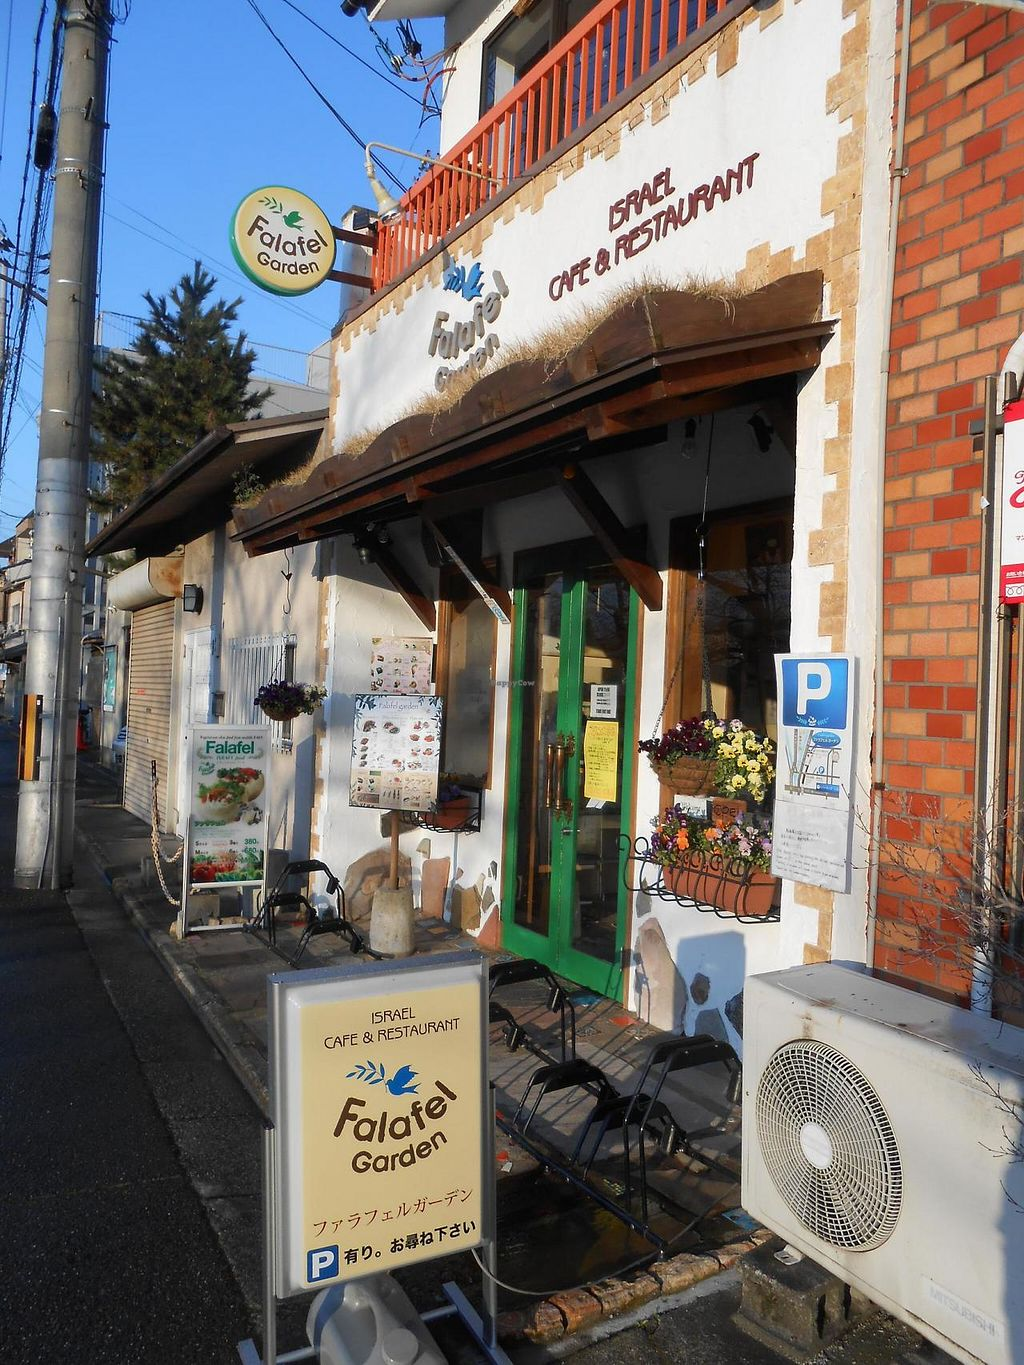 """Photo of Falafel Garden  by <a href=""""/members/profile/Den28"""">Den28</a> <br/>Falafel Garden <br/> June 7, 2015  - <a href='/contact/abuse/image/26257/105077'>Report</a>"""